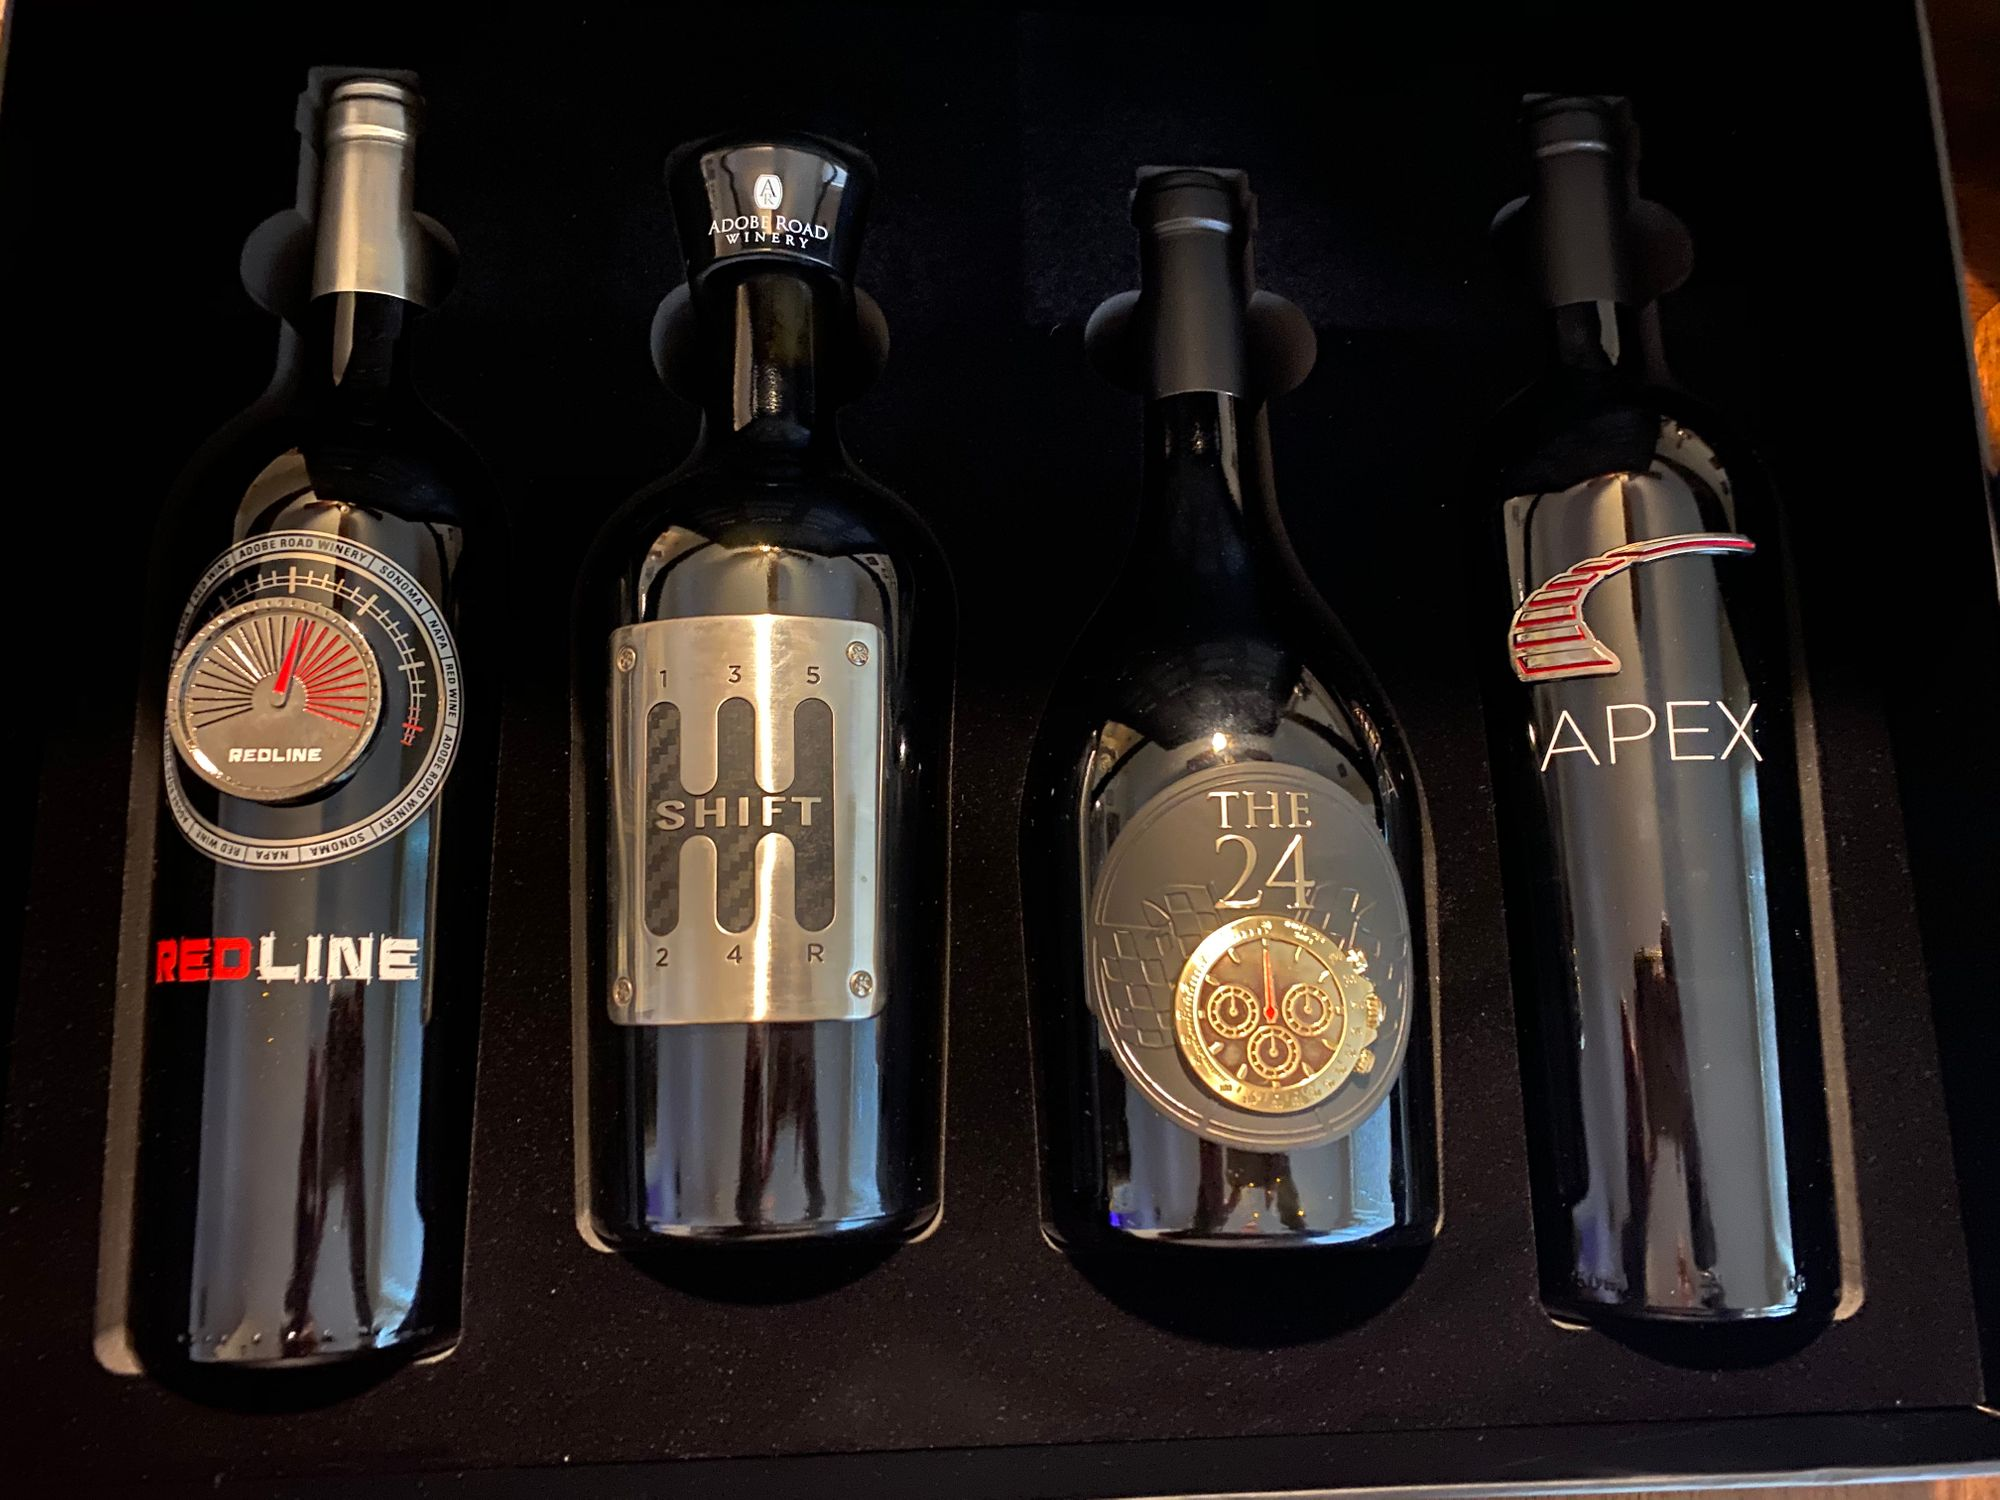 Each Bottle Has It's Own Design